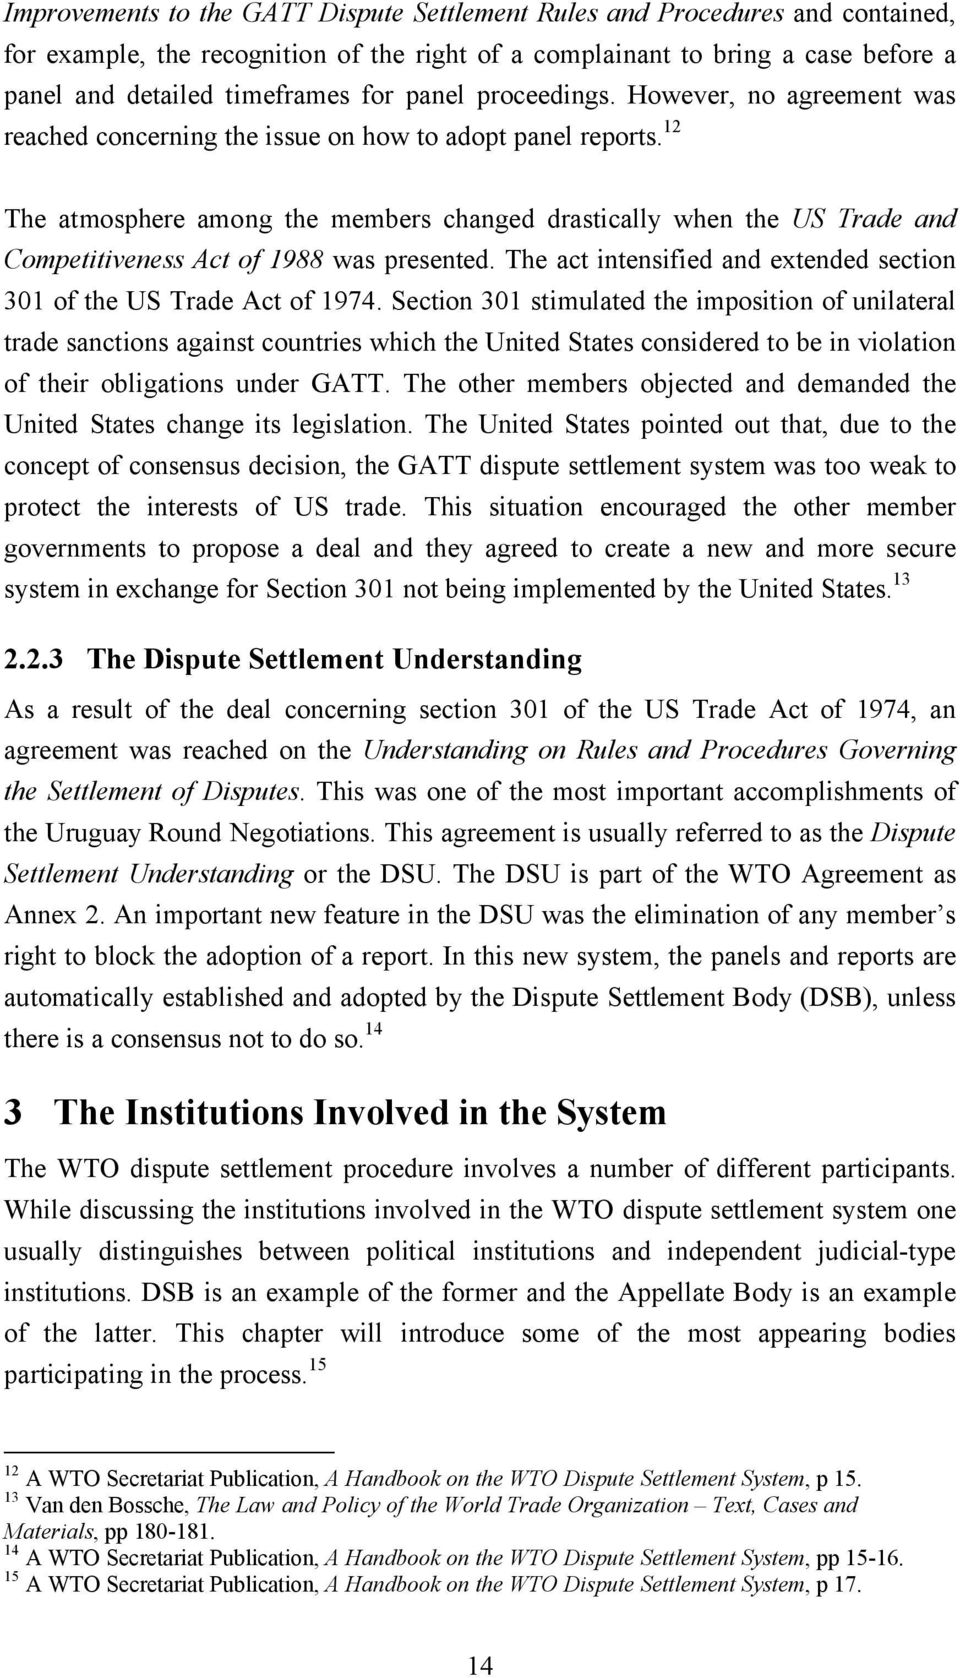 12 The atmosphere among the members changed drastically when the US Trade and Competitiveness Act of 1988 was presented. The act intensified and extended section 301 of the US Trade Act of 1974.